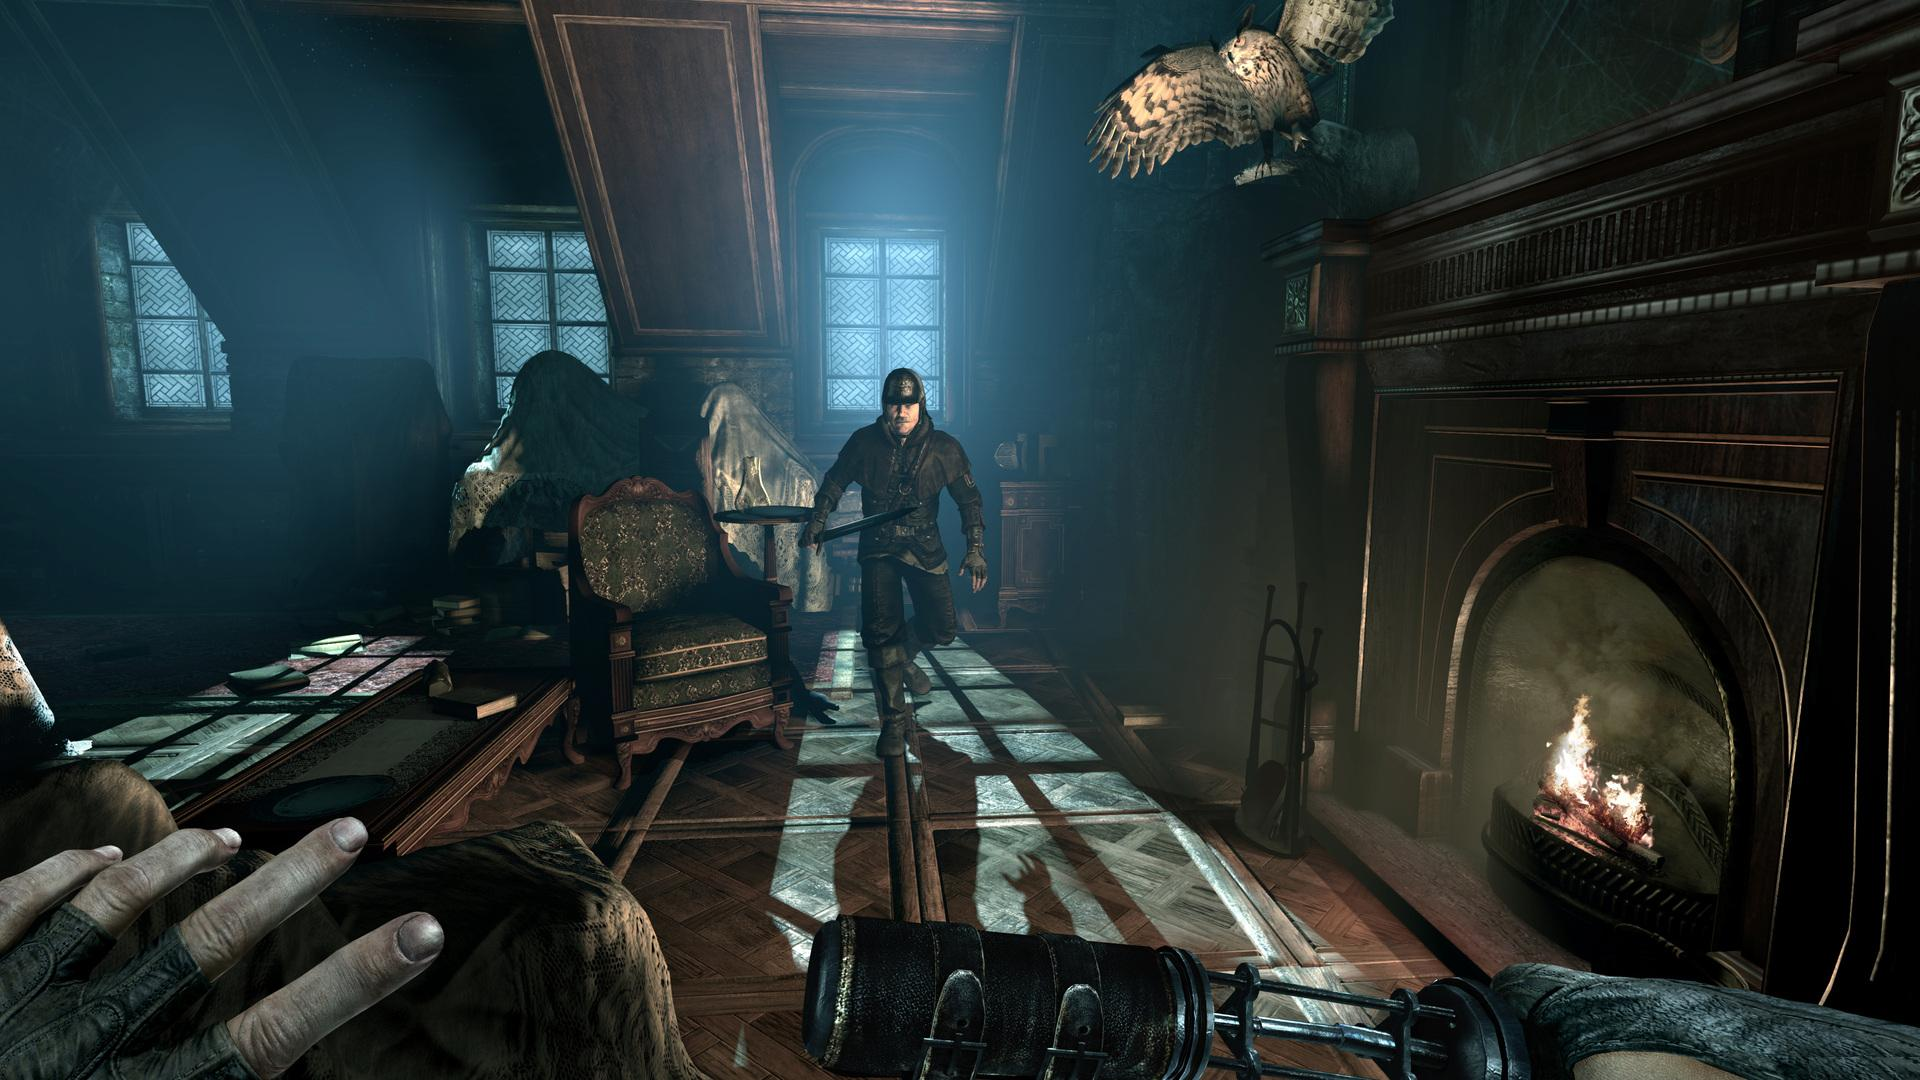 Best Thief Game Photos and Pictures, Thief Game High Definition Wallpapers